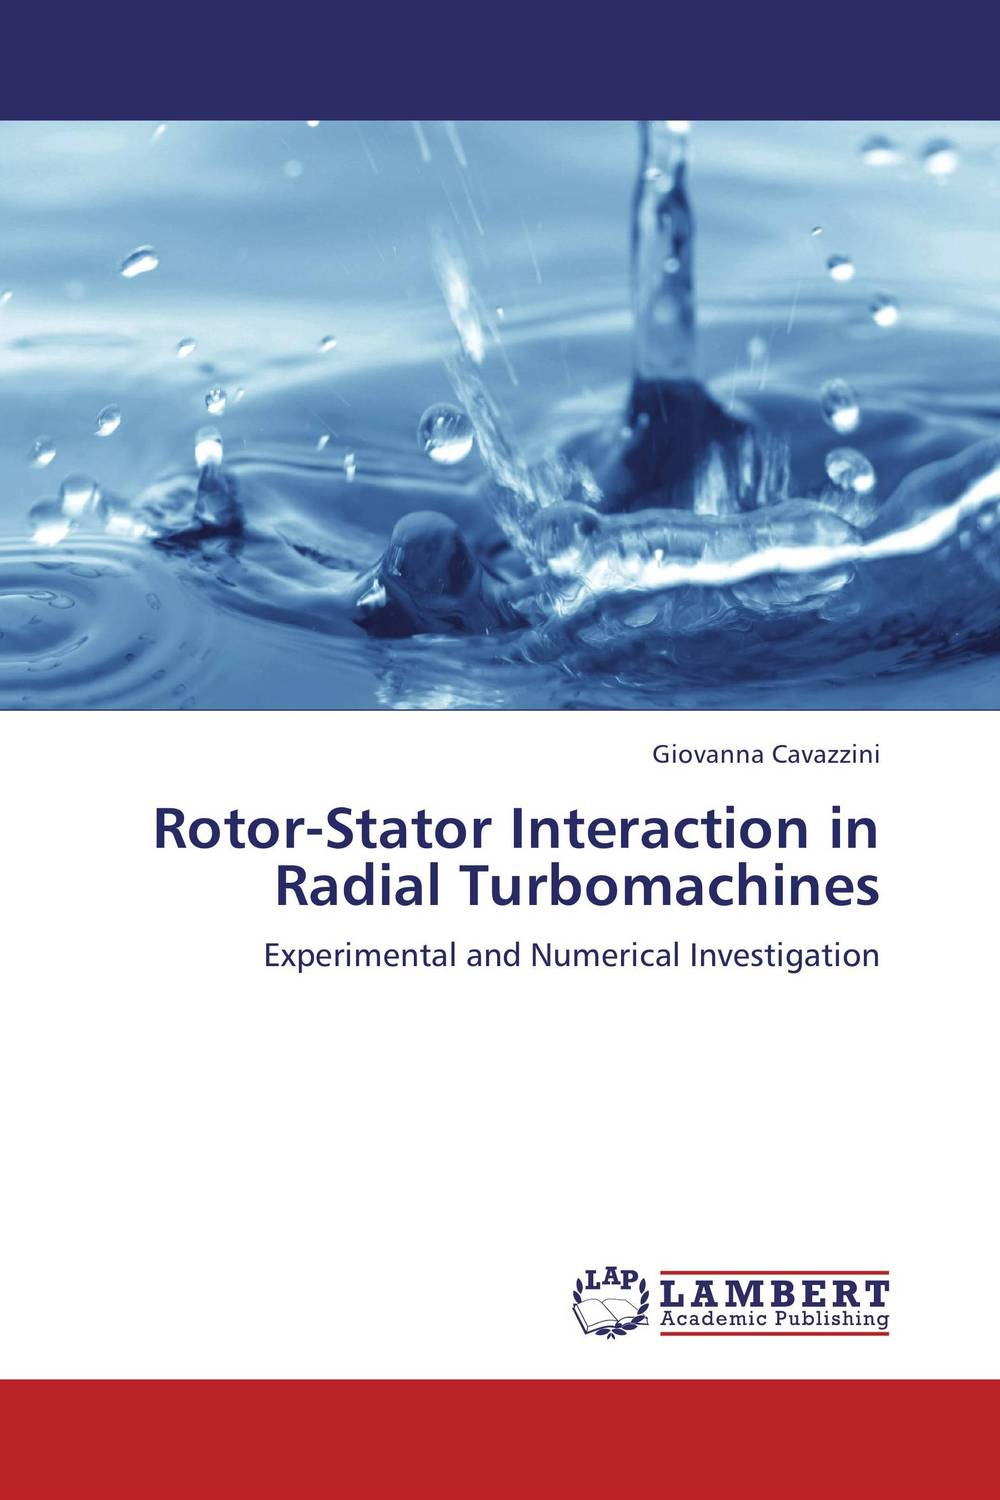 Rotor-Stator Interaction in Radial Turbomachines